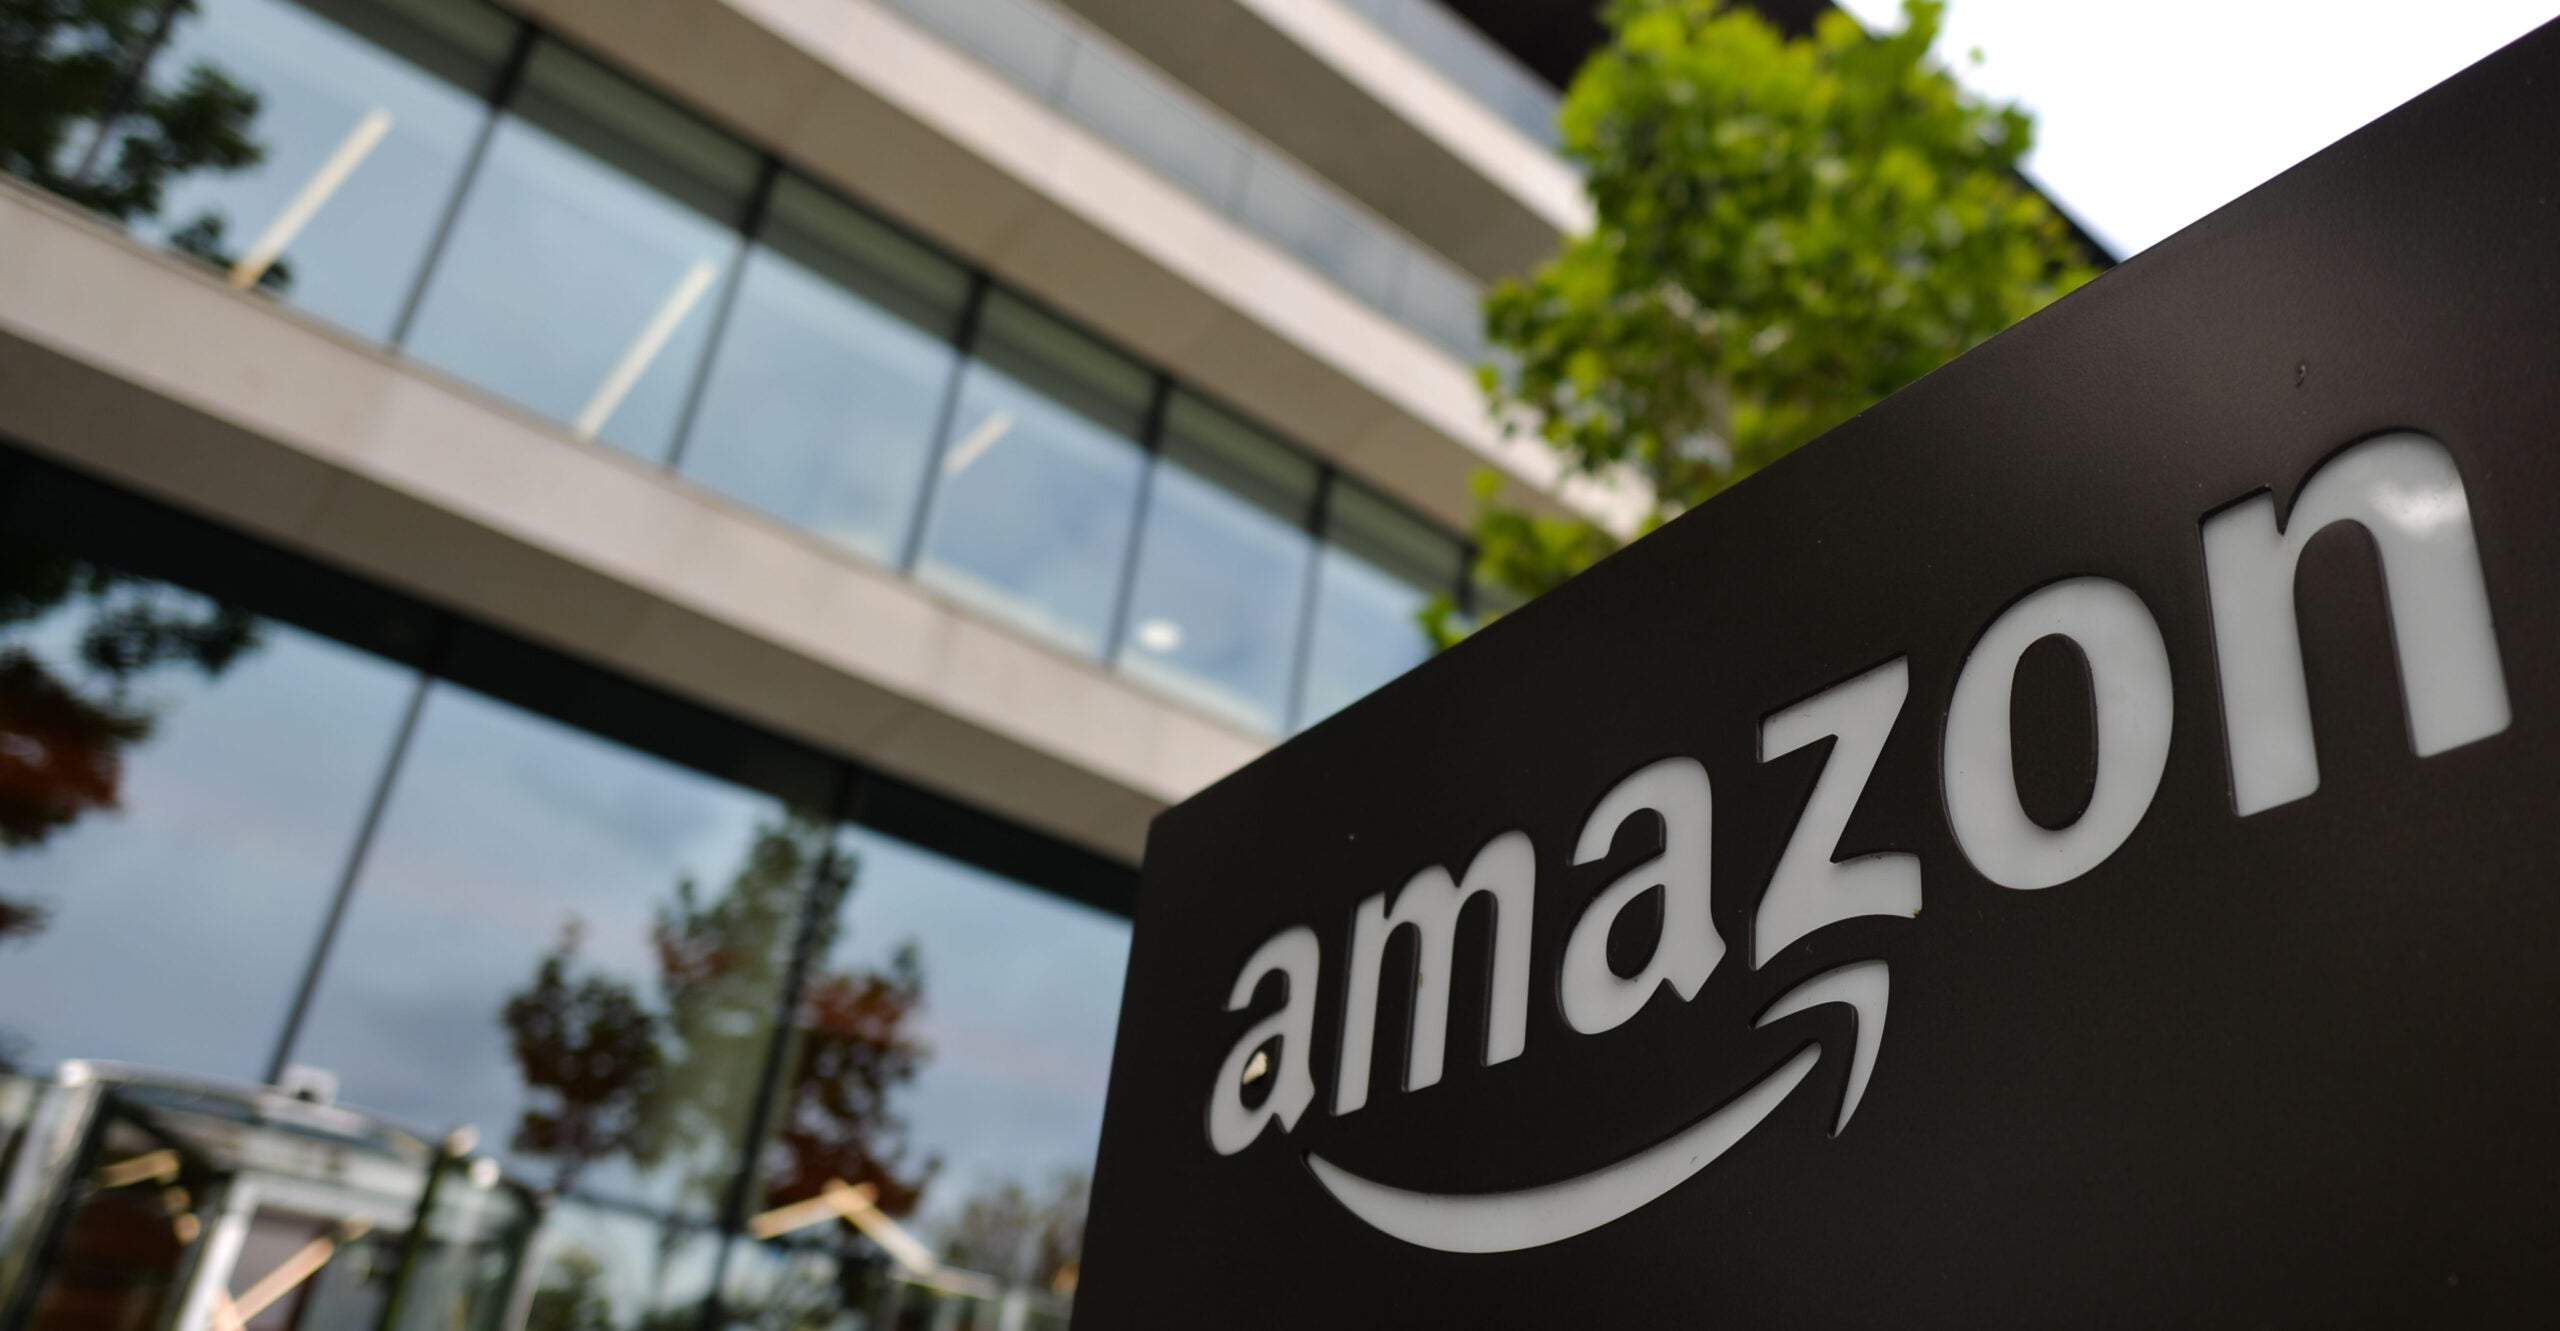 Amazon Reverses Ad Ban for Book Investigating BLM, Cites 'Inaccurately Enforced' Policies